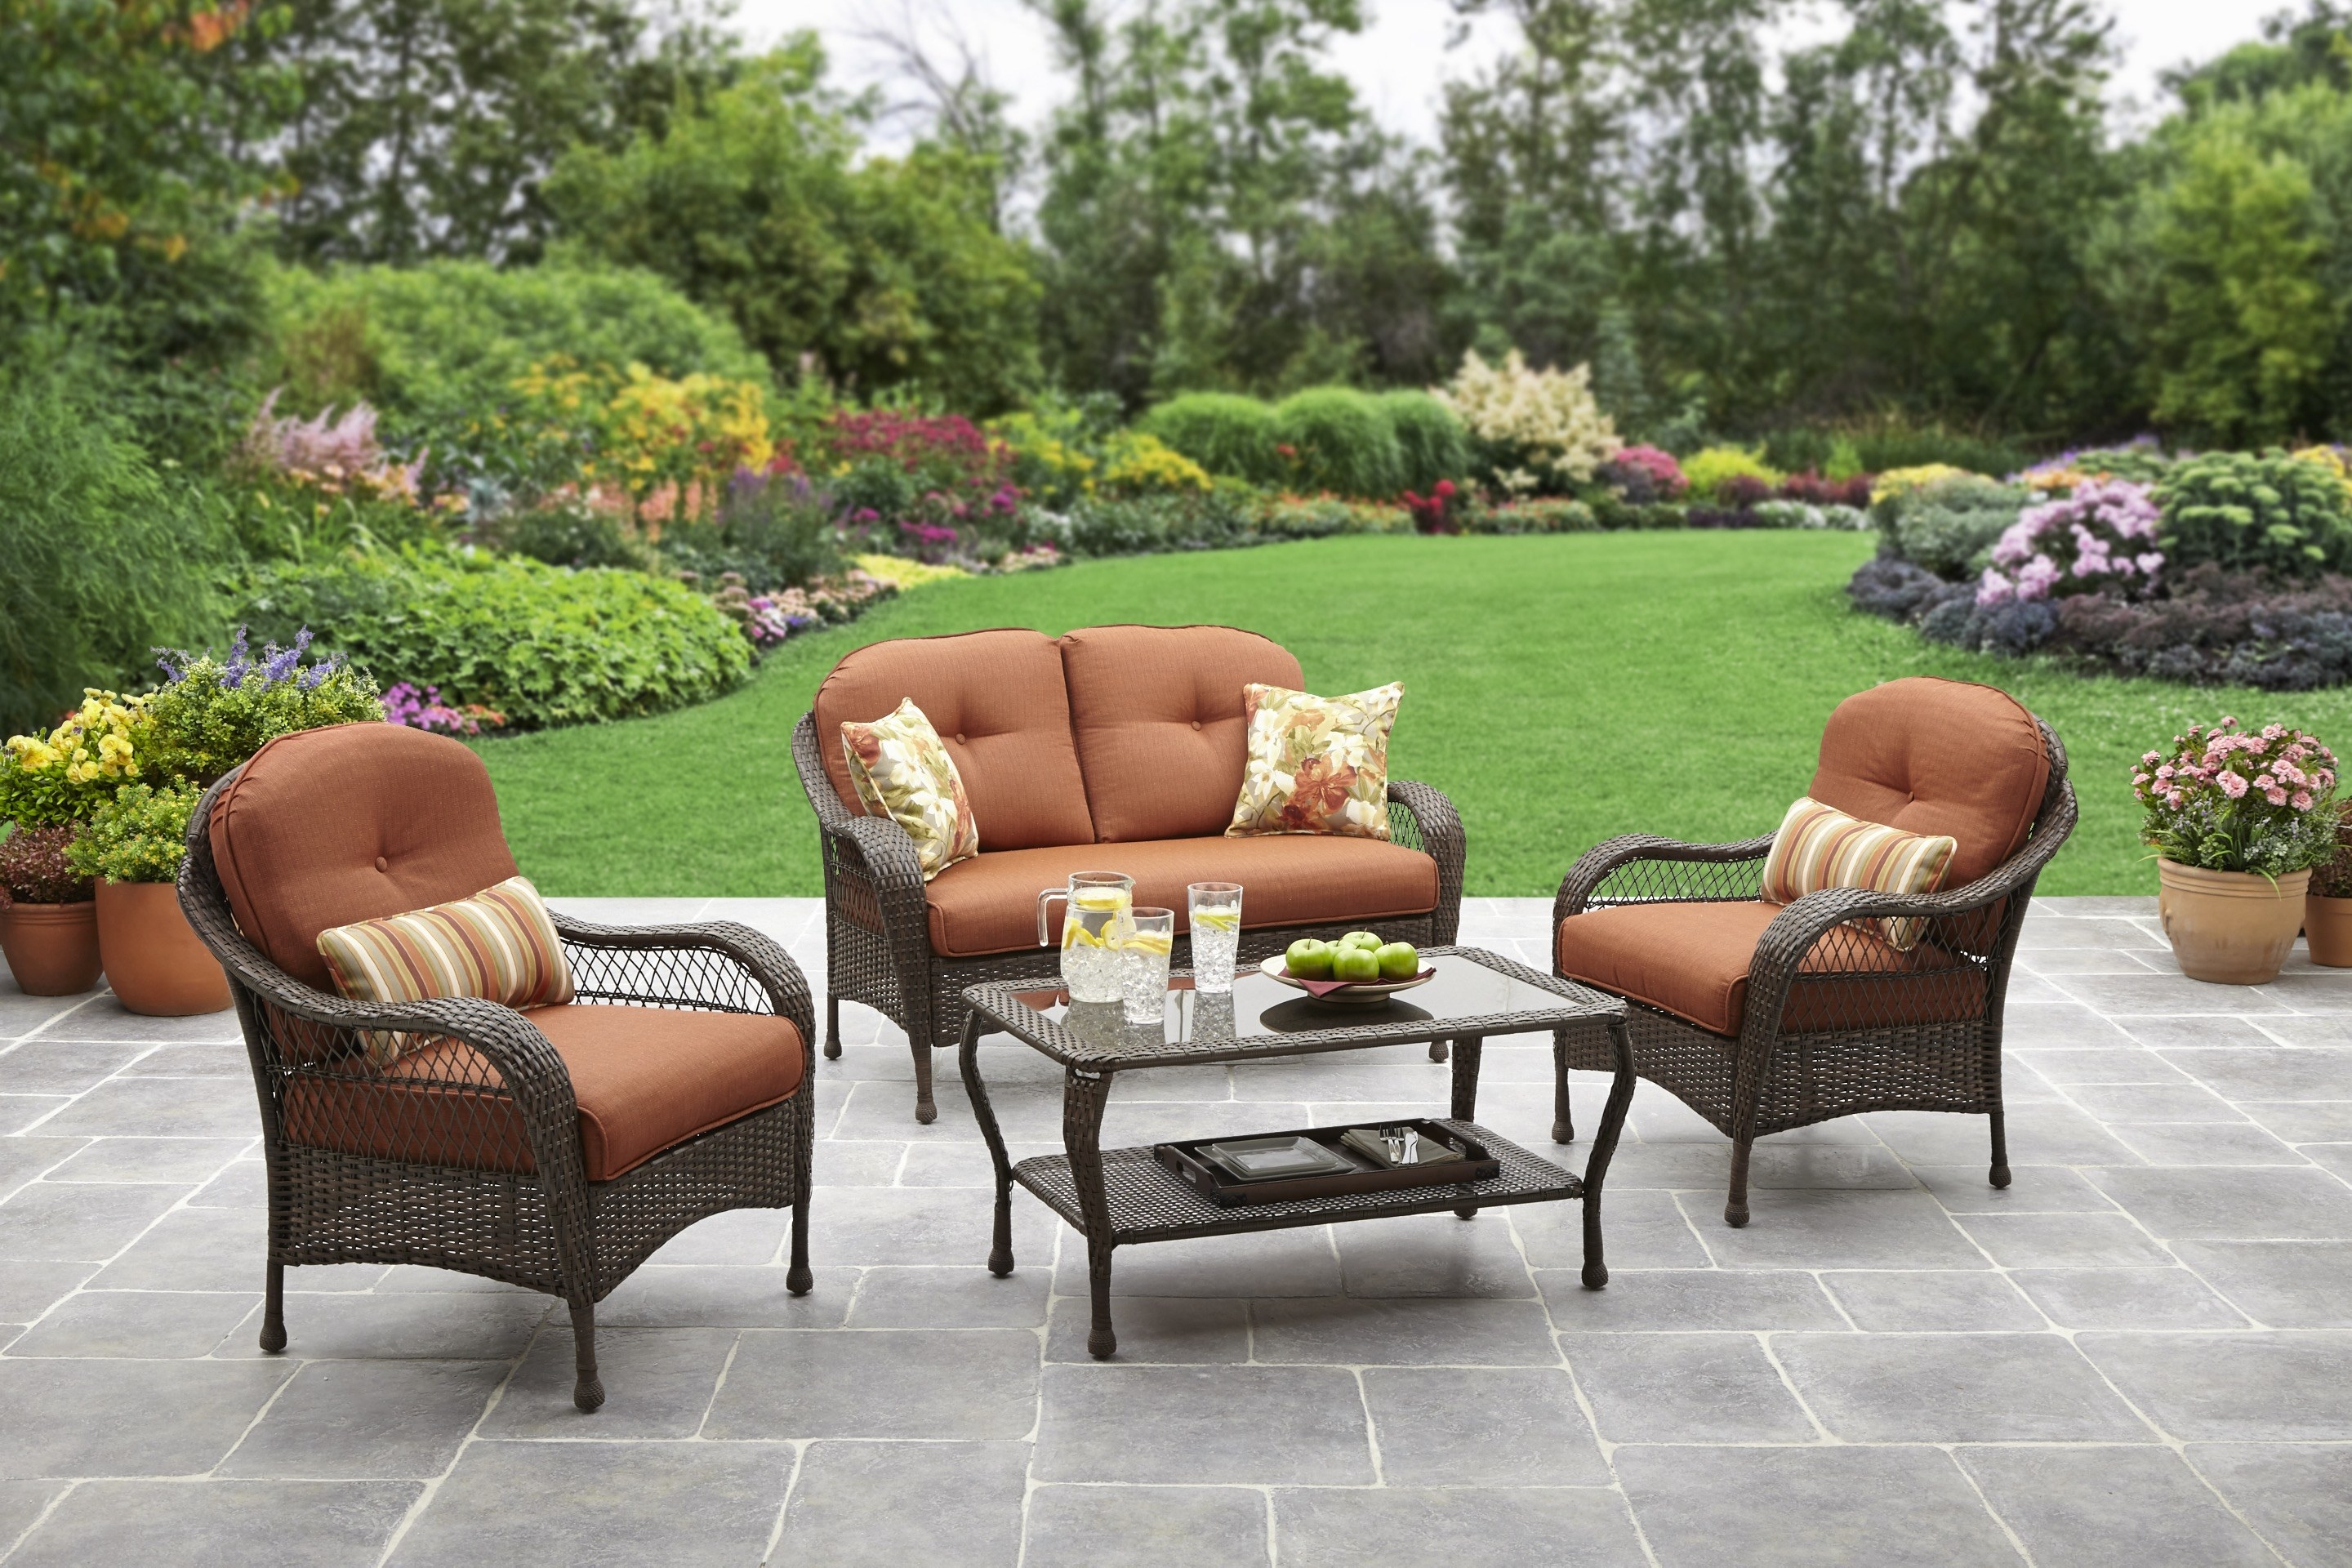 A dark brown wicker, outdoor set including a two-level table, two chairs, and one love seat